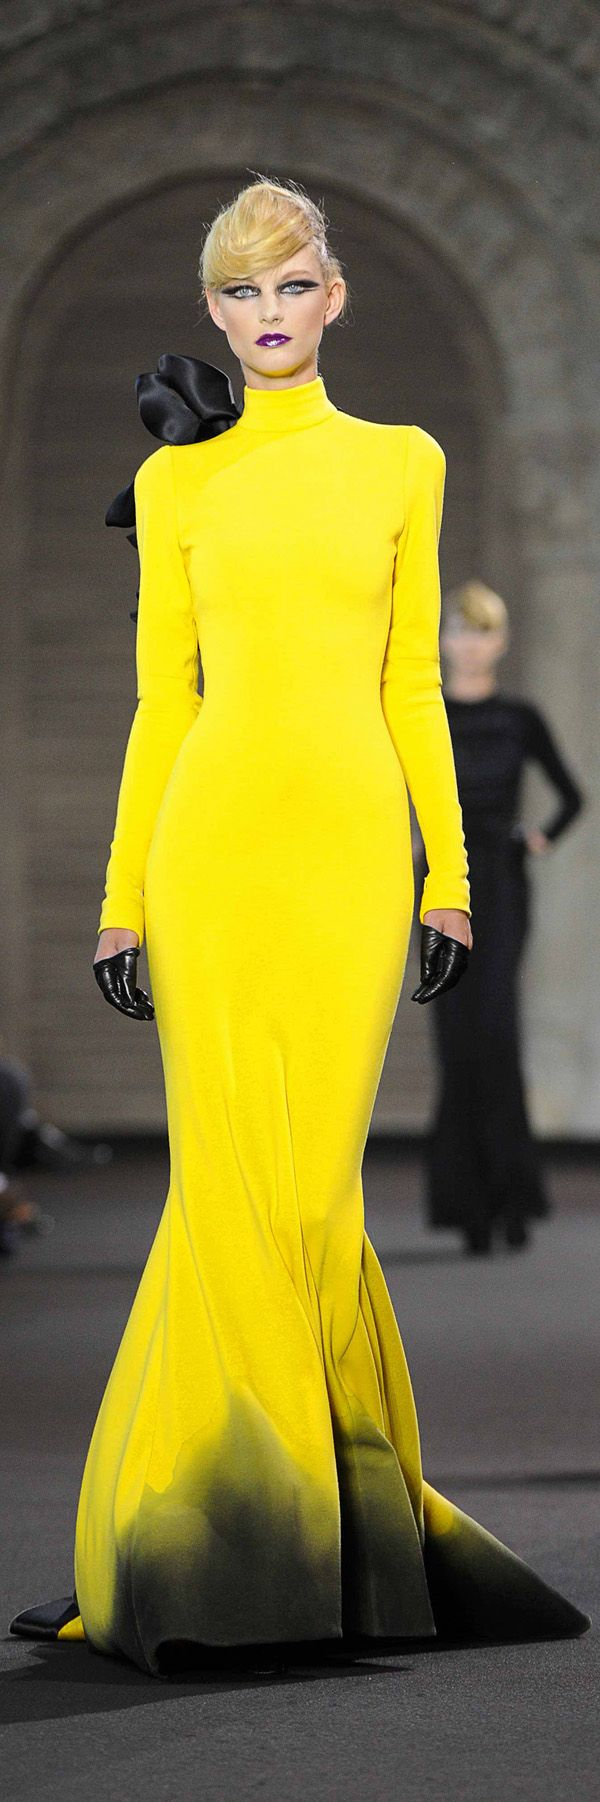 ✜ Stéphane Rolland - Couture - Fall-Winter 2011 ✜ http://www.vogue.it/en/shows/show/fw-11-12-haute-couture/stephane-rolland/